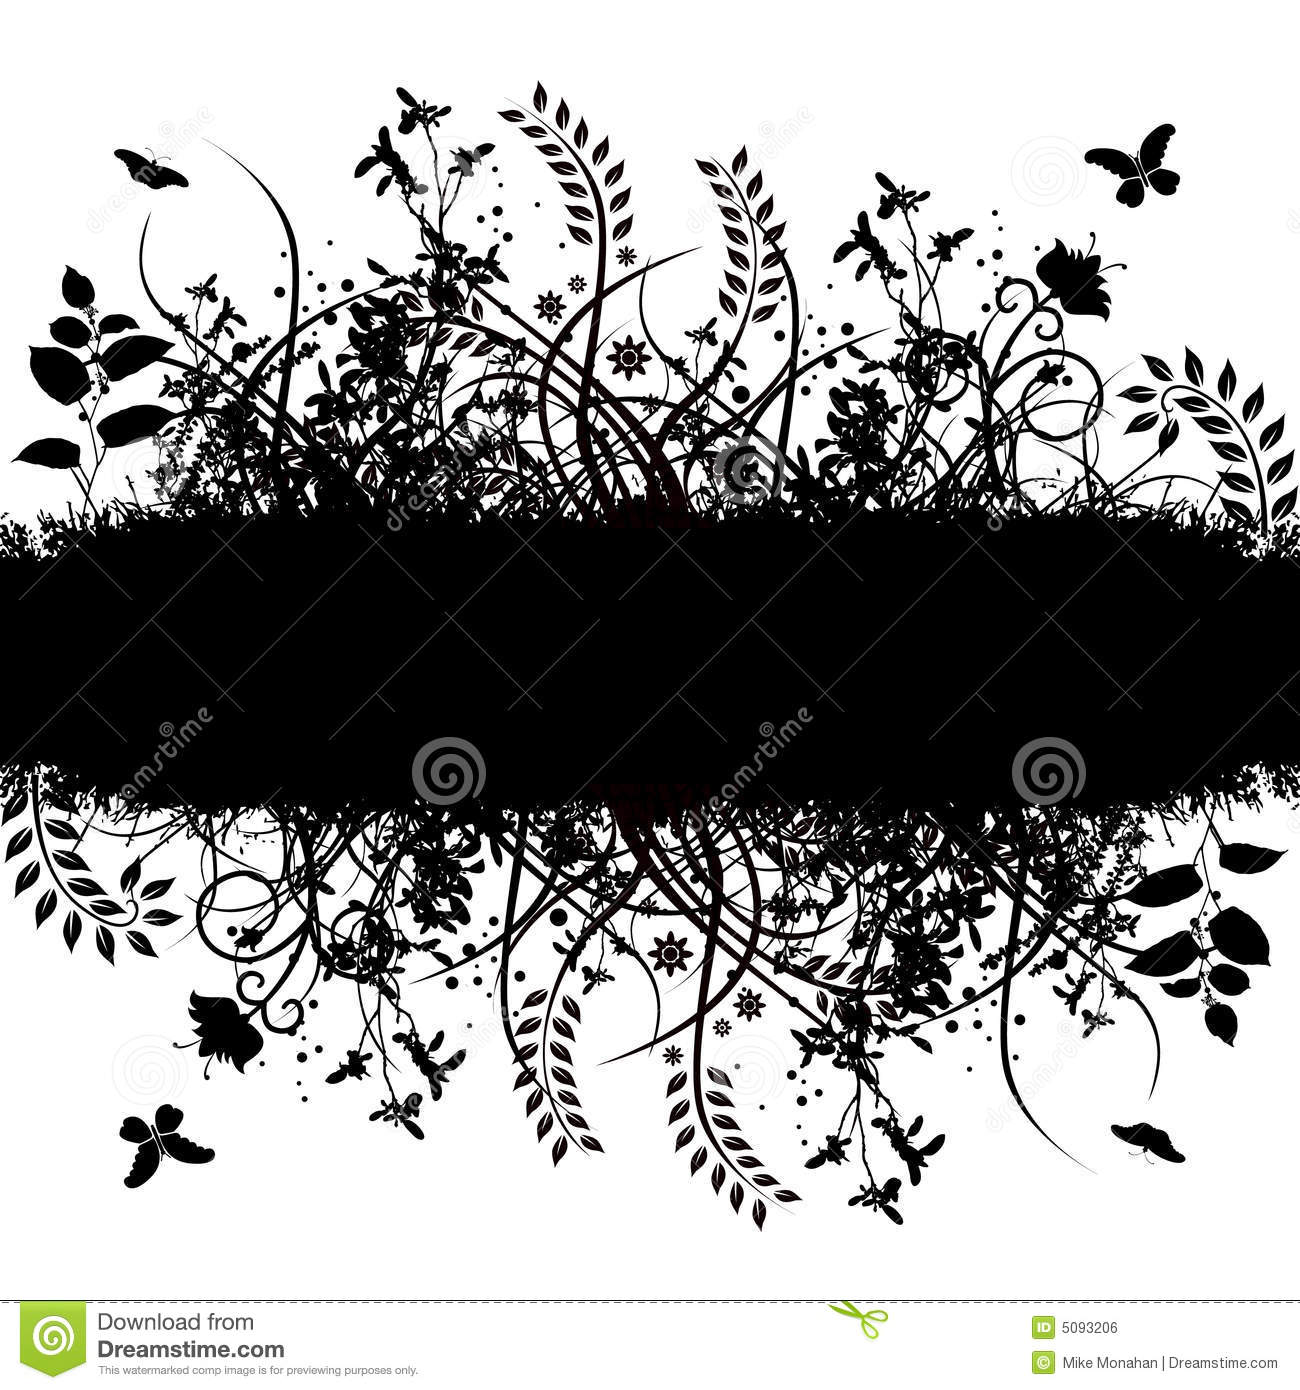 Floral Grunge Vector Banners